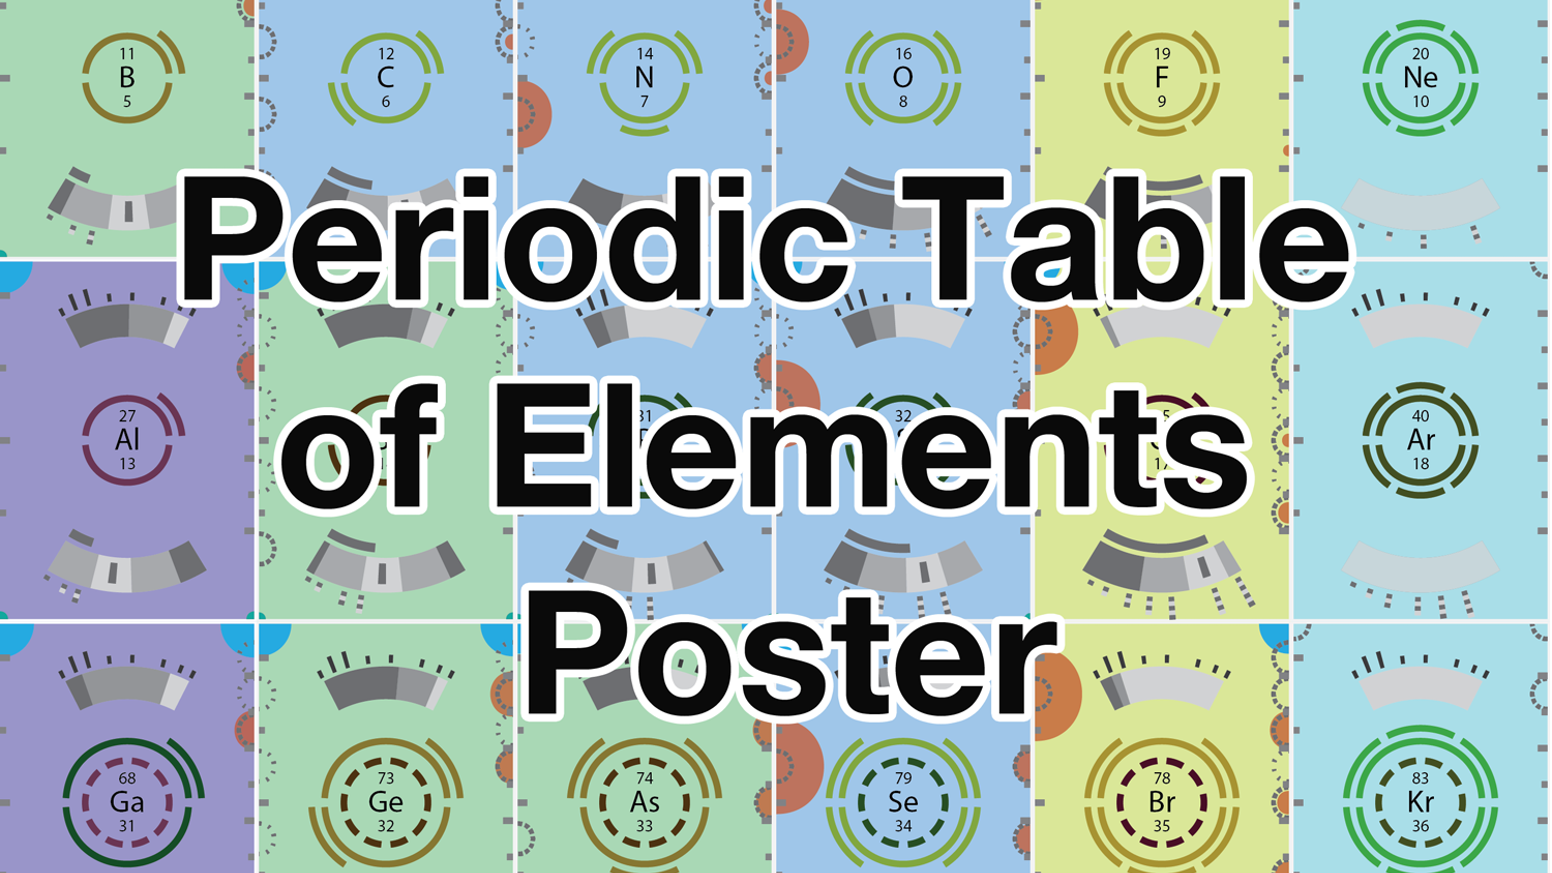 The Periodic Table Of Elements Poster By Sam Price Kickstarter